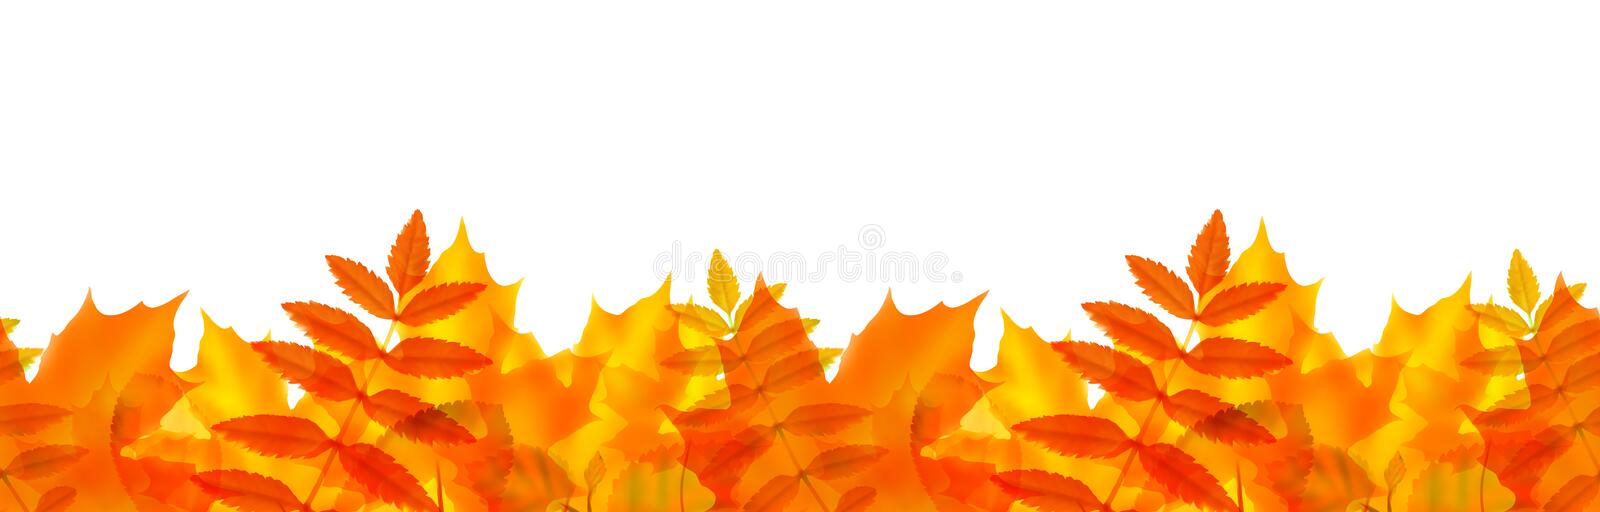 Seamless border with autumn leaves stock illustration